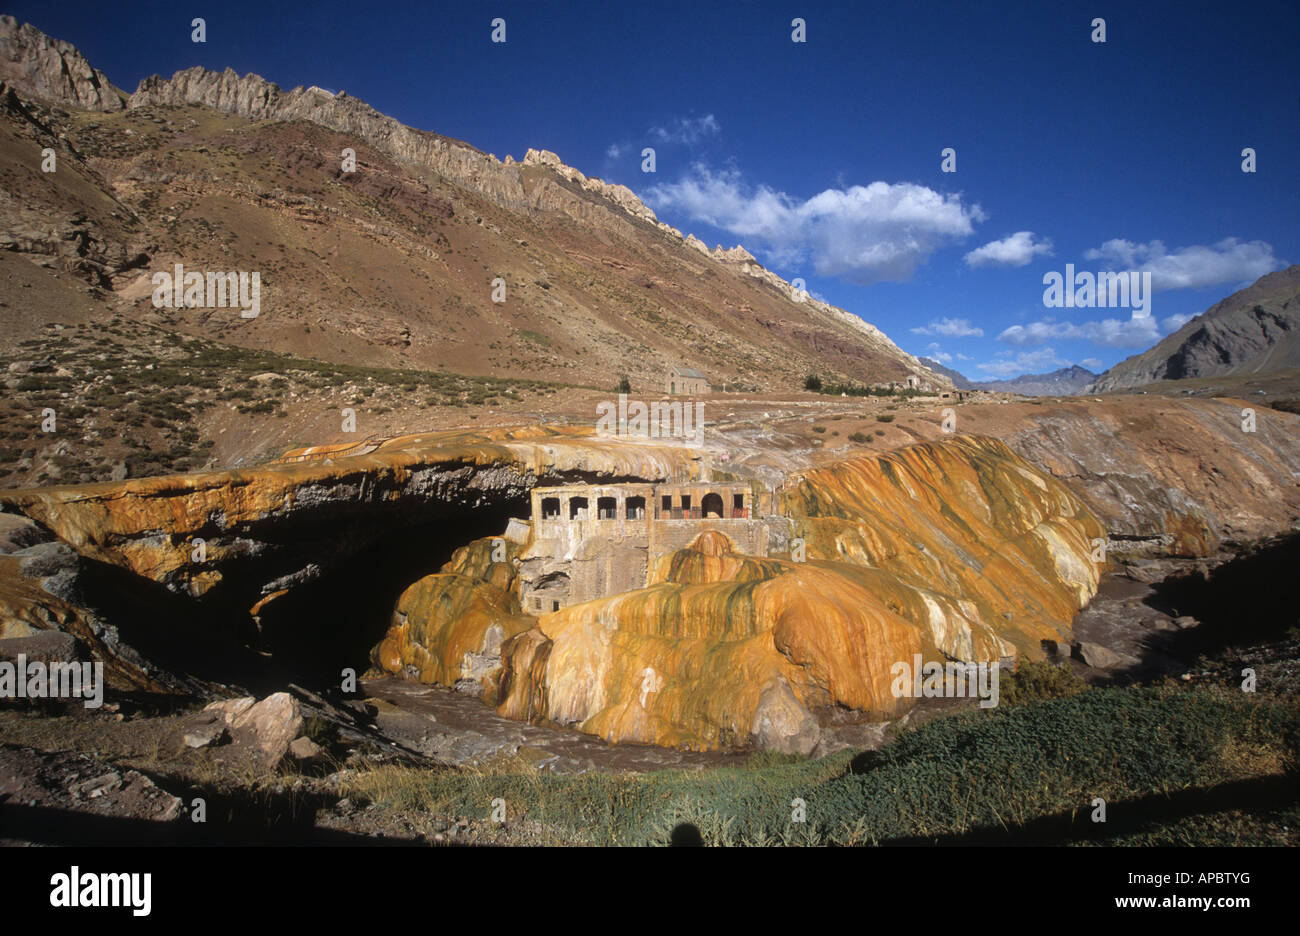 Abandoned thermal baths and mineral deposits at Puente del ...